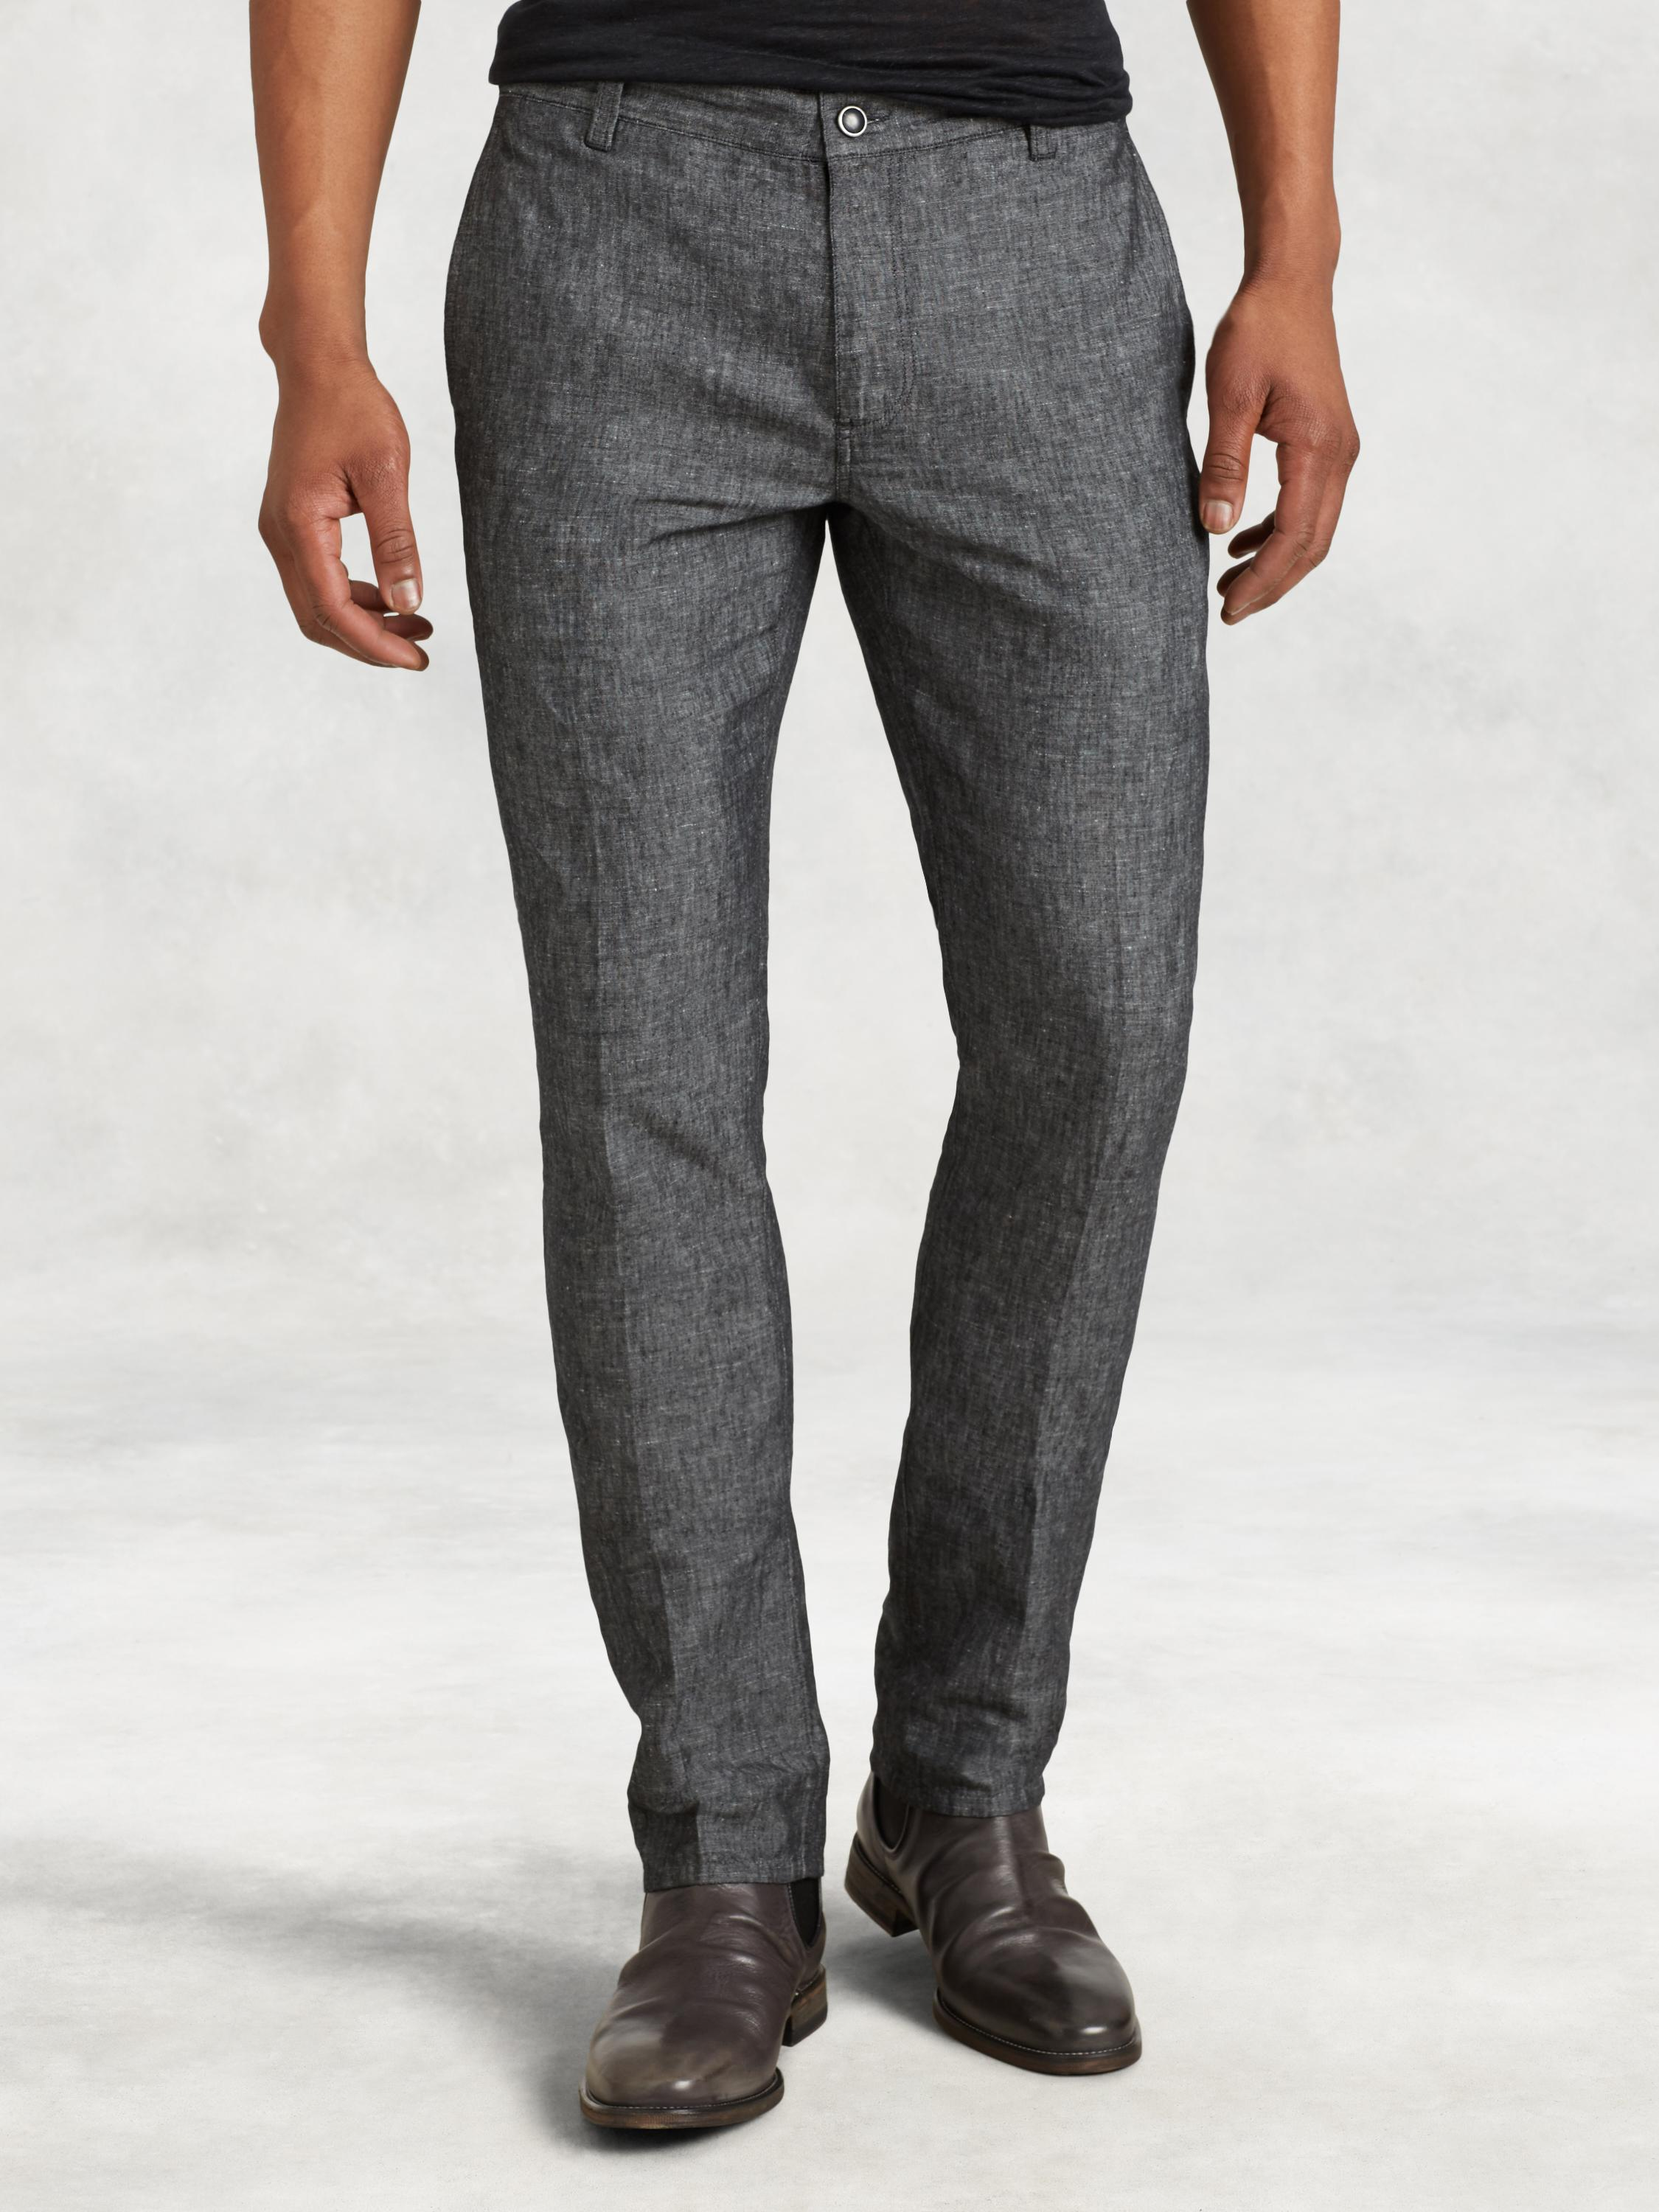 Cotton Linen Motor City Pant